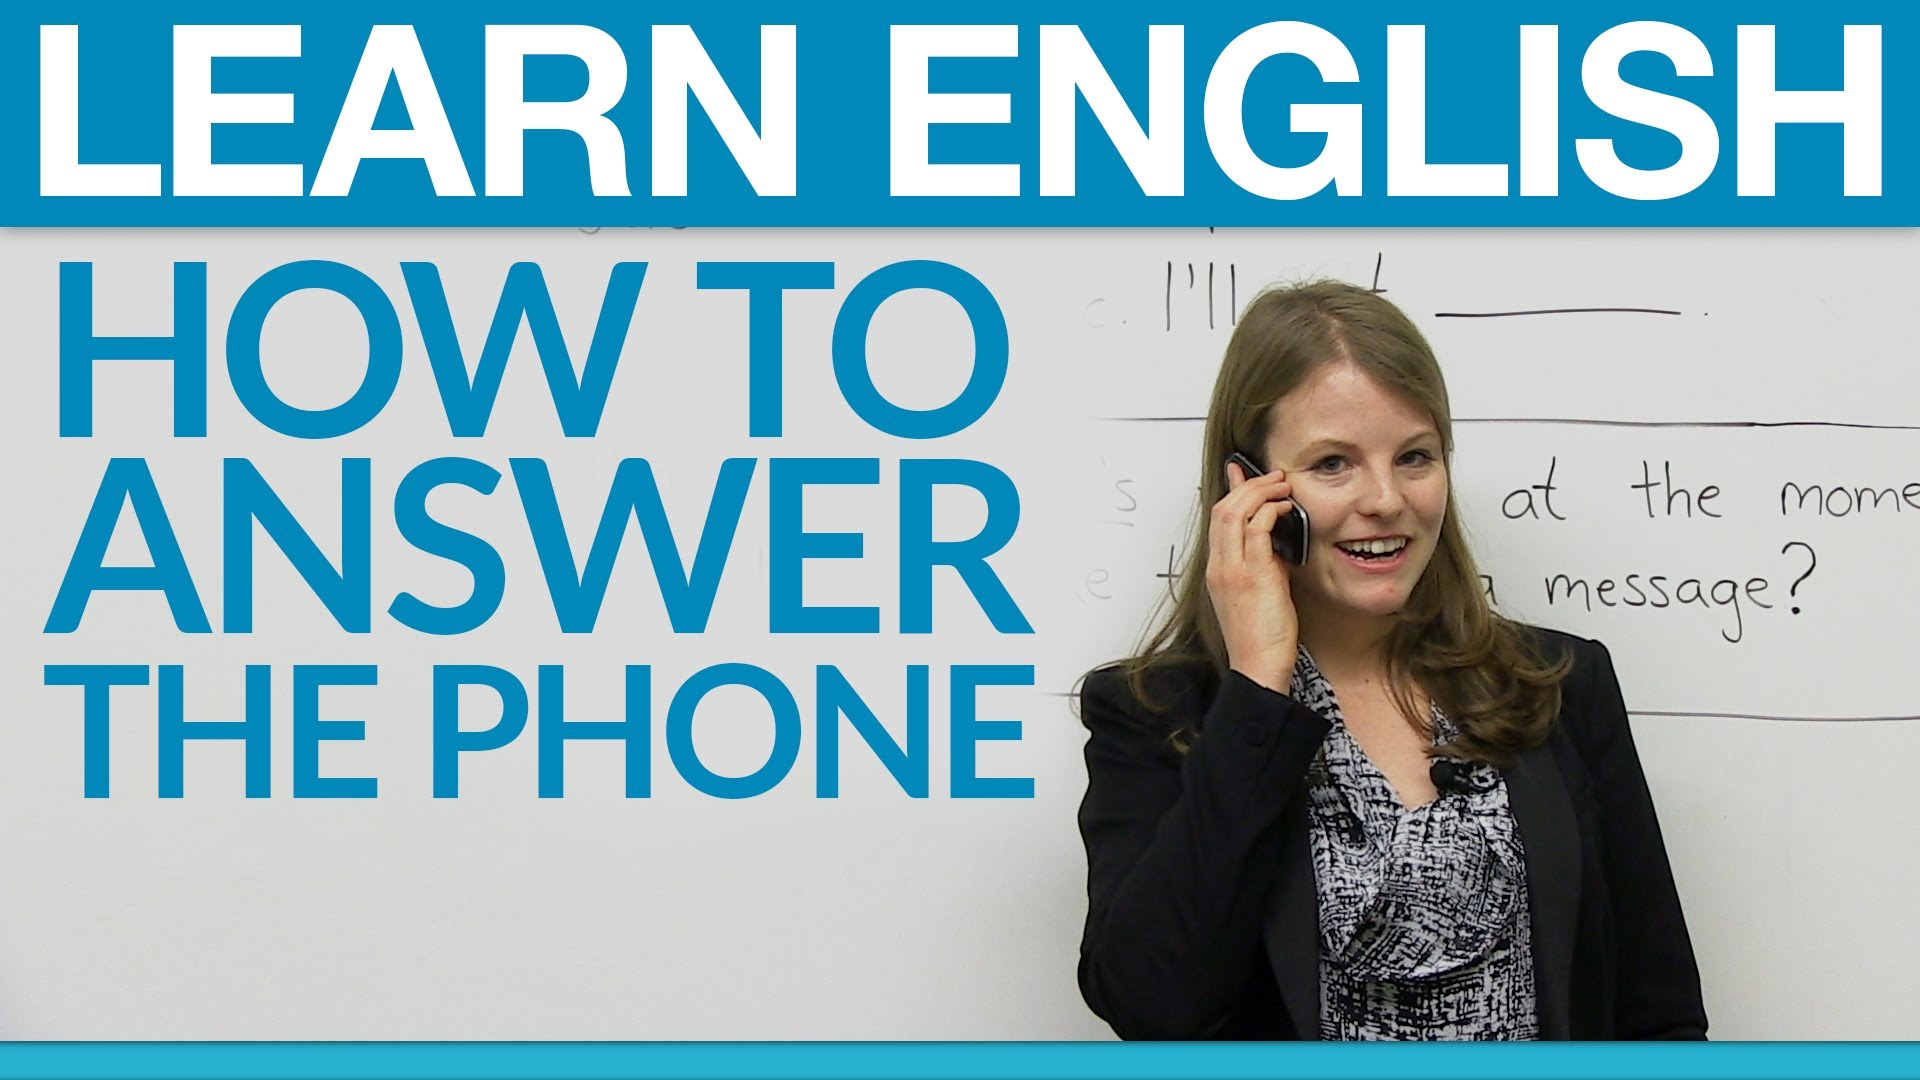 Learning English - How to answer the phone professionally